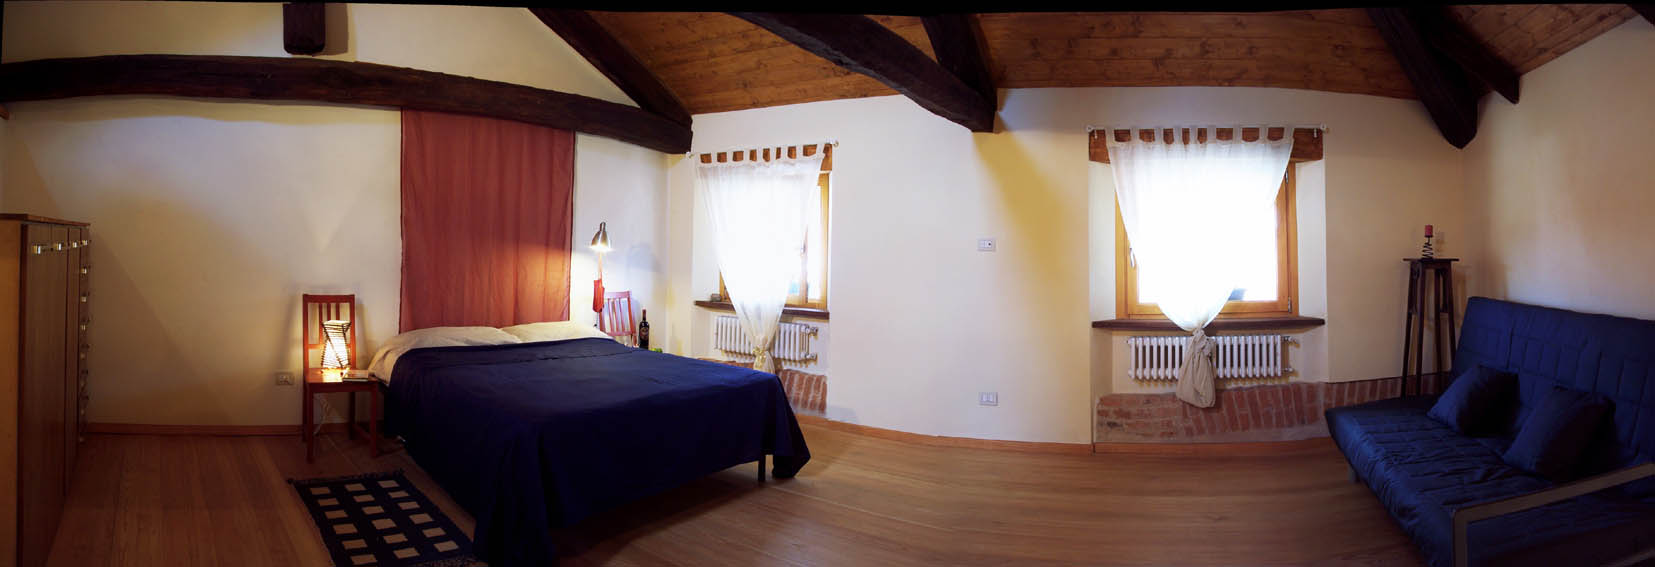 Casa Prosit, Asti, Italy, easy bed & breakfast bookings in Asti